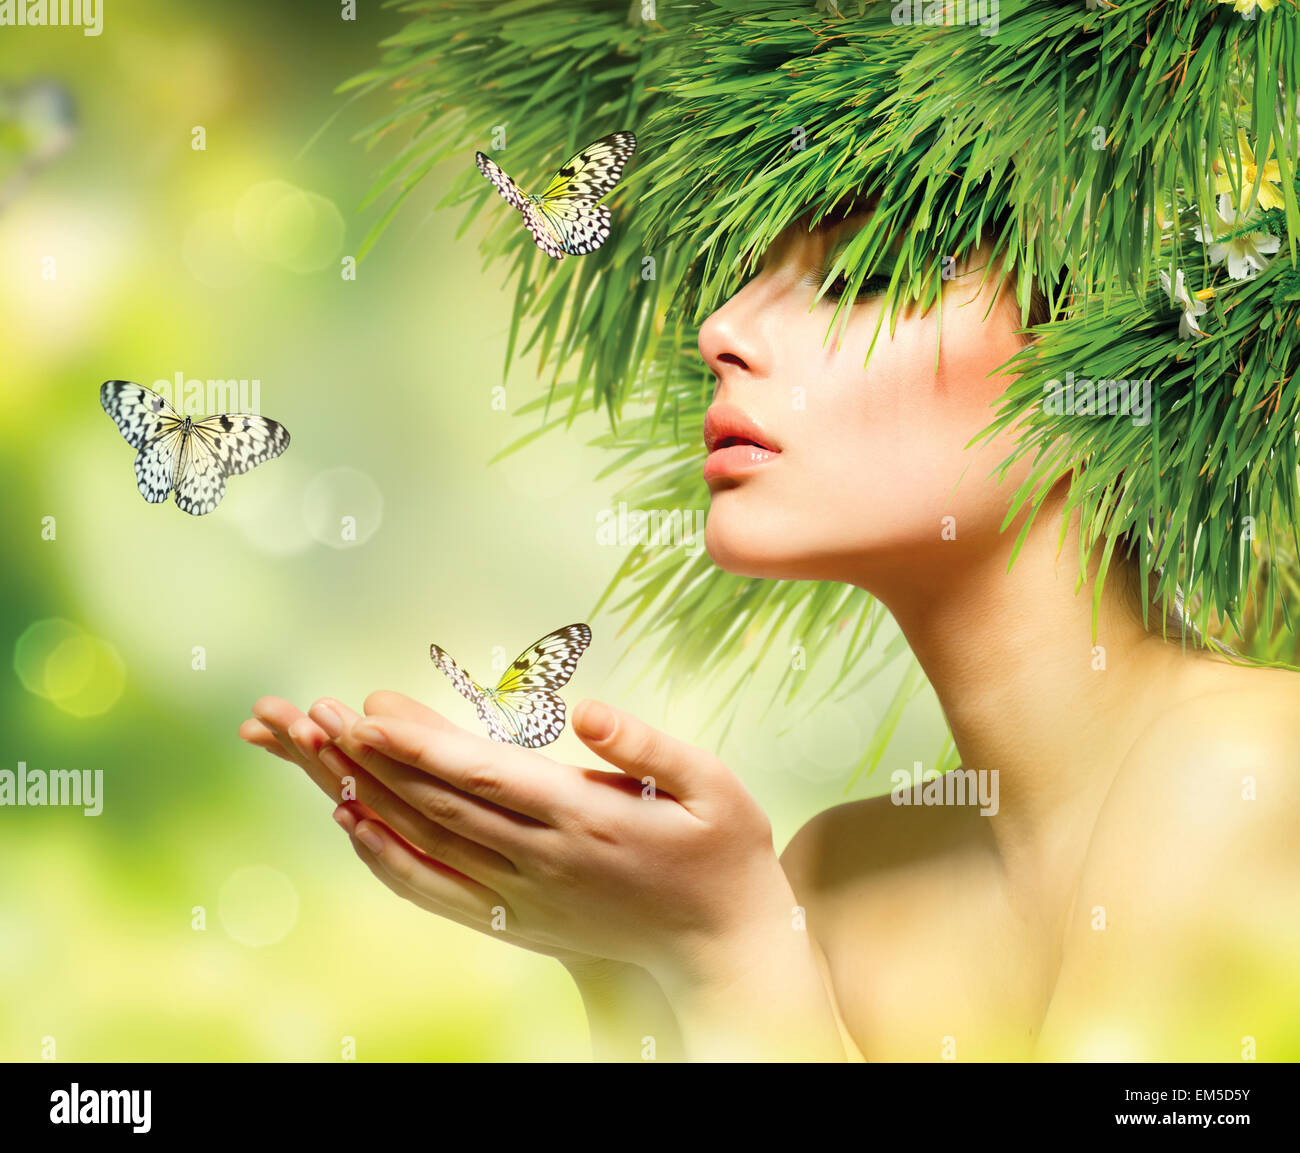 Spring Woman. Summer Girl with Grass Hair and Green Makeup - Stock Image